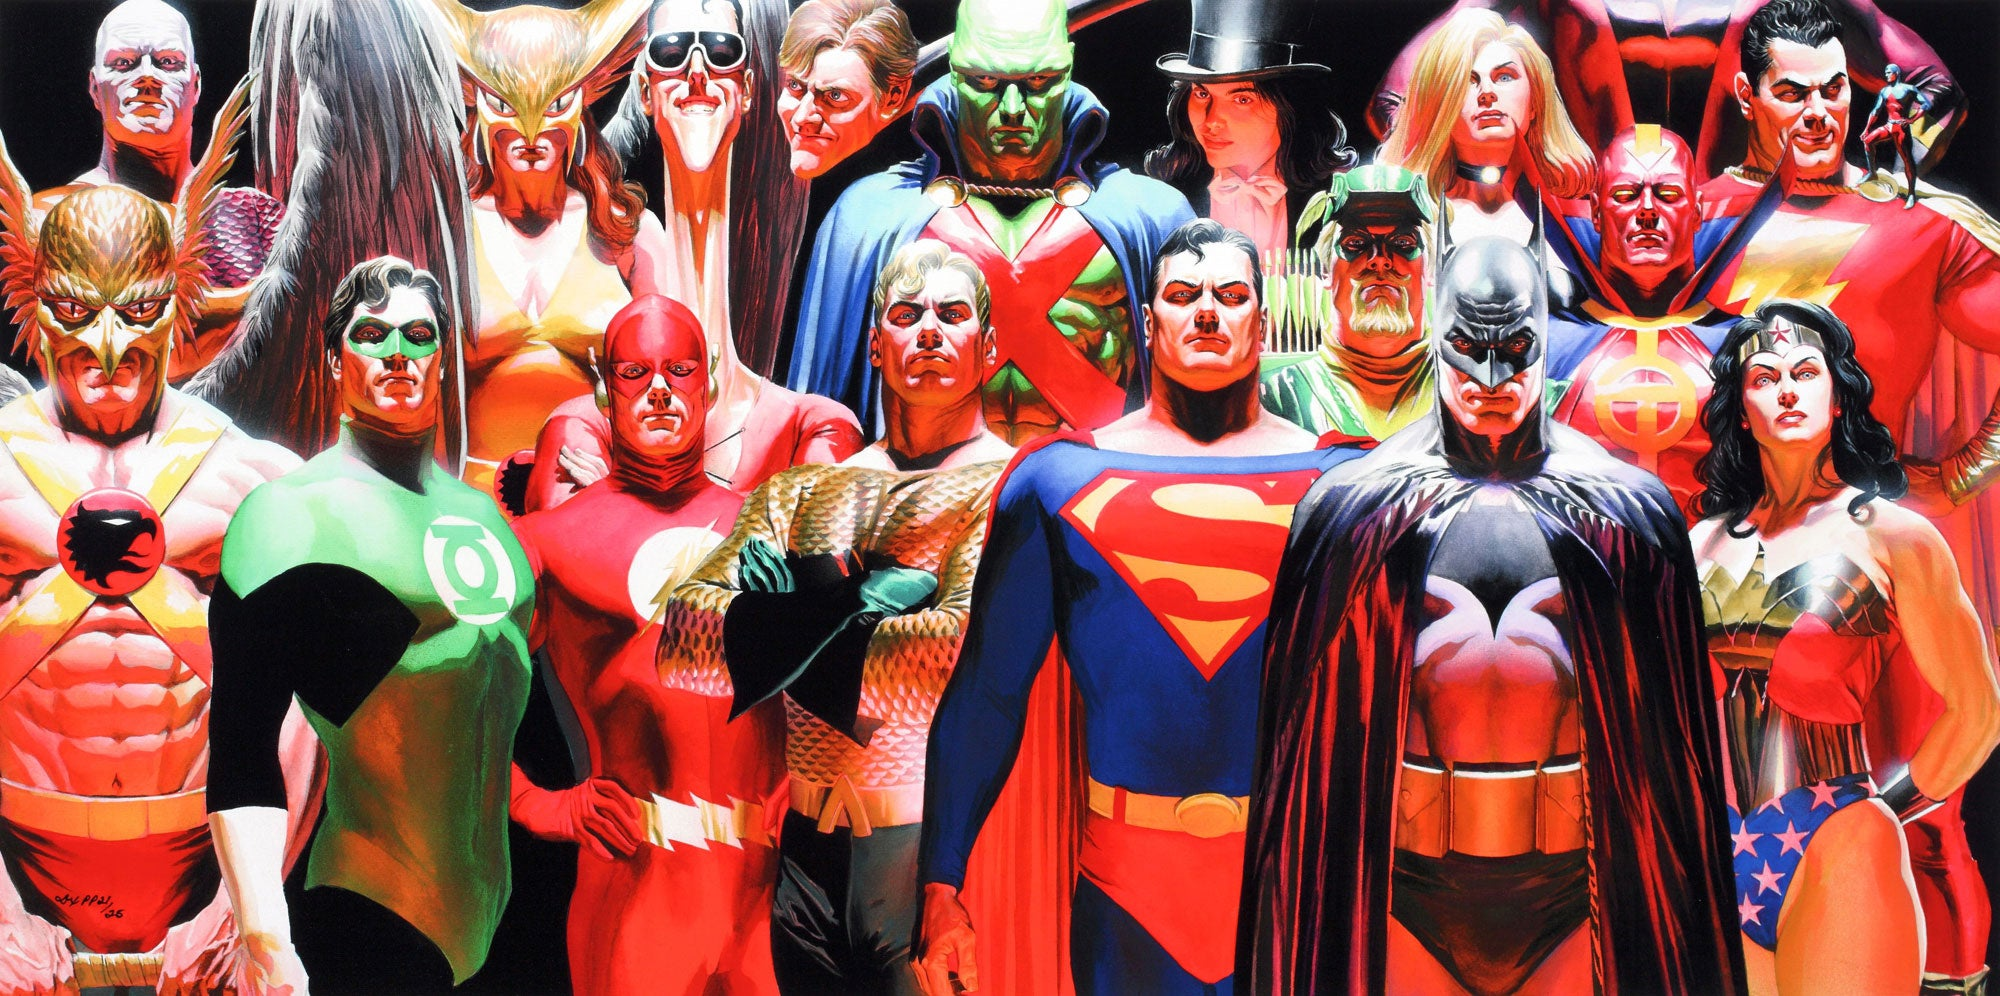 The Next Justice League Movies Will Come Out In 2017